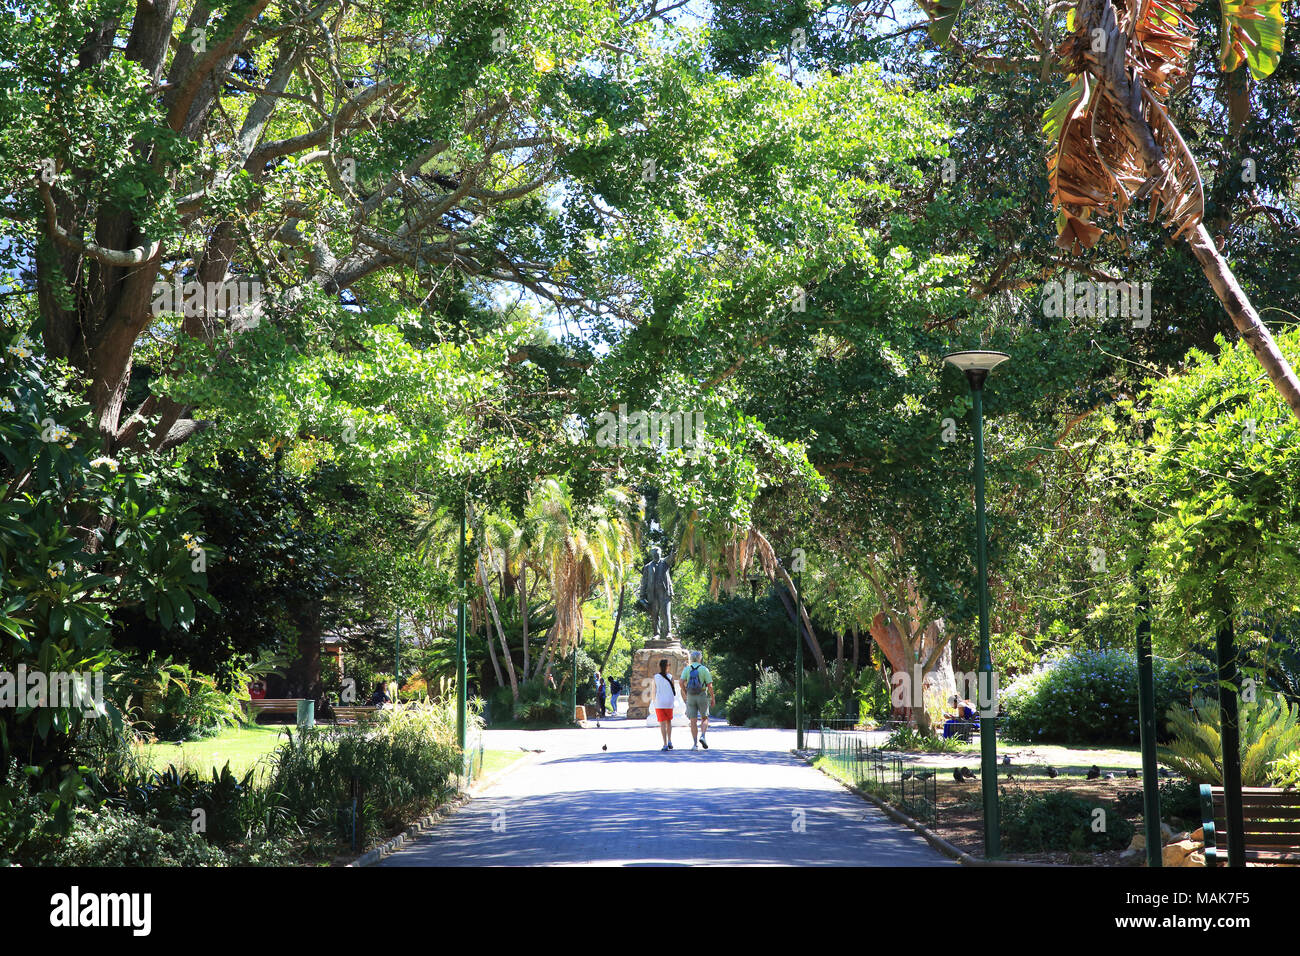 Company's Garden, a park and heritage site, created in the 1650s by European settlers, in central Cape Town, South Africa - Stock Image